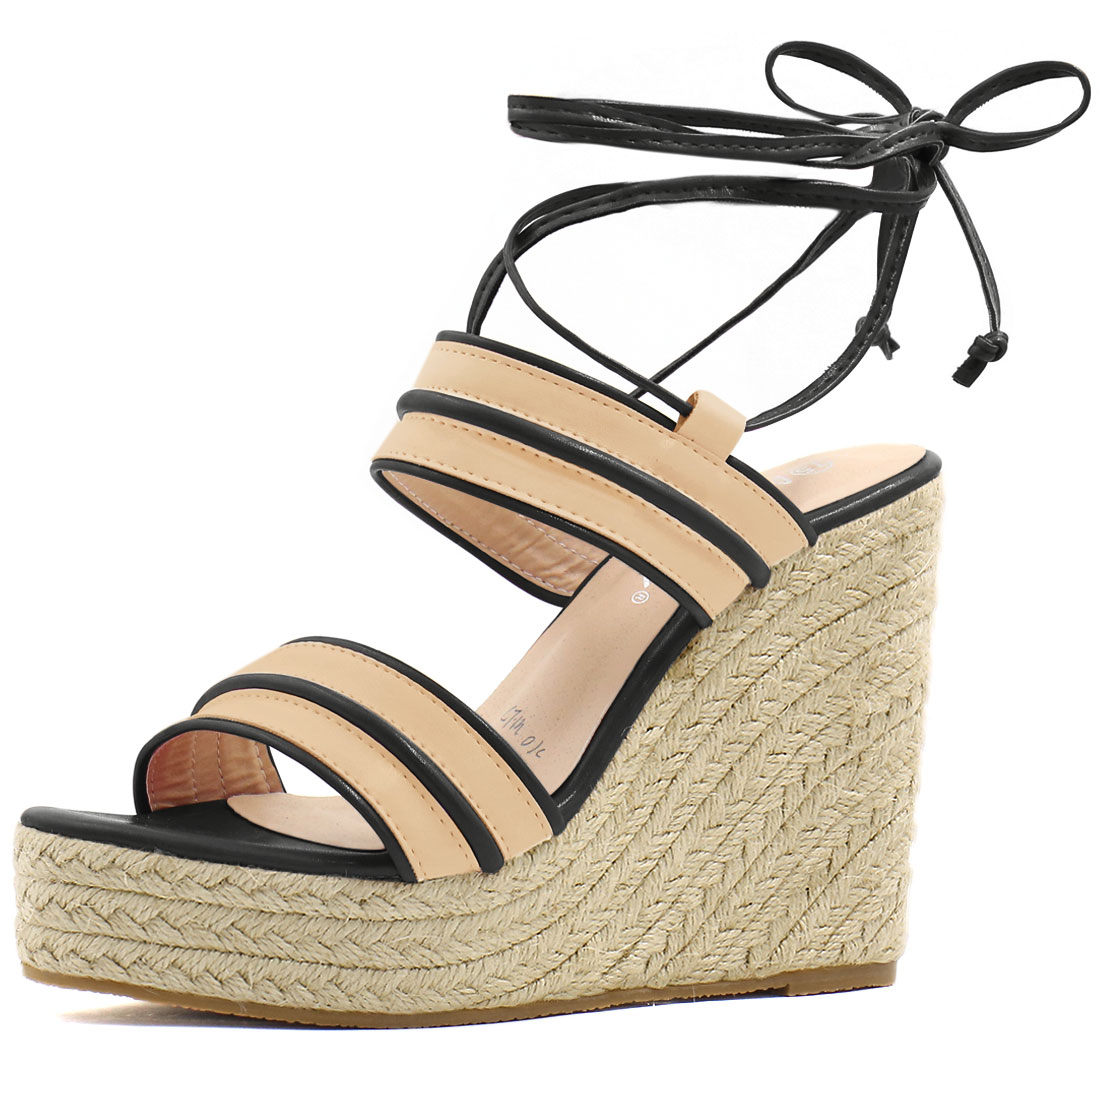 Women Striped Ankle Tie Espadrille Wedge Sandals Apricot Black US 7